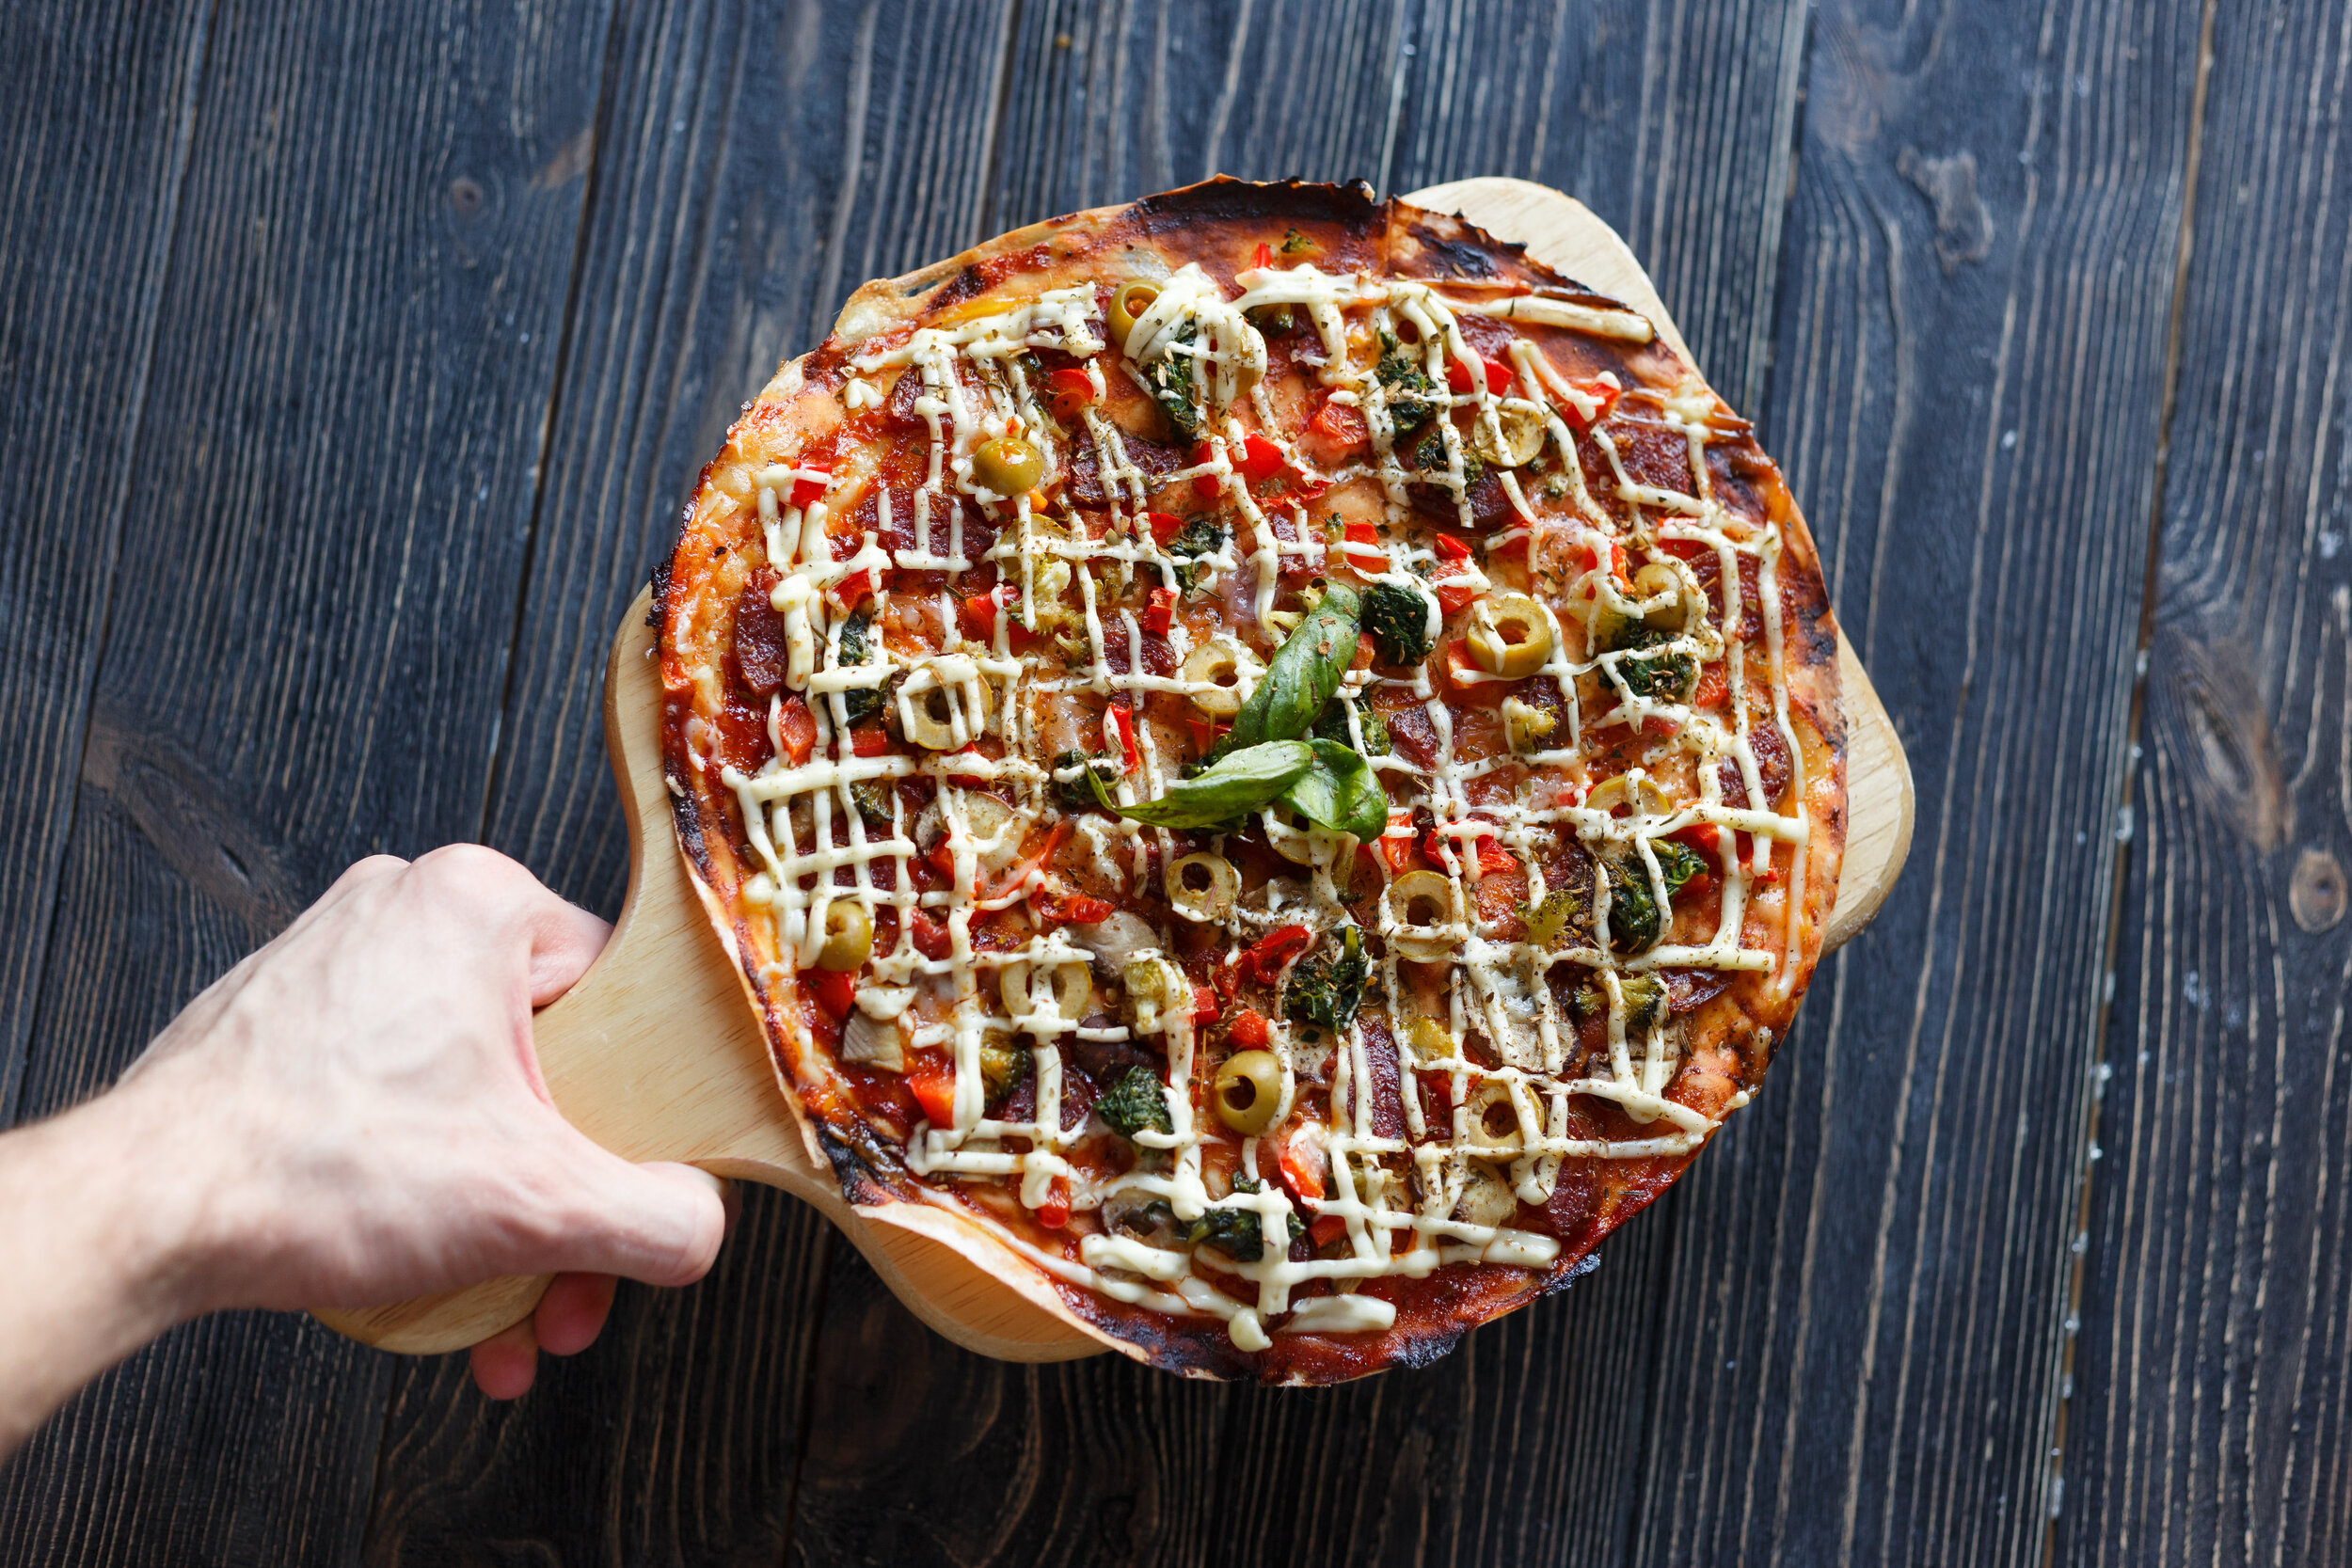 YOU WANT PIZZA? - Avg. slice of pizza is 260 Calories!